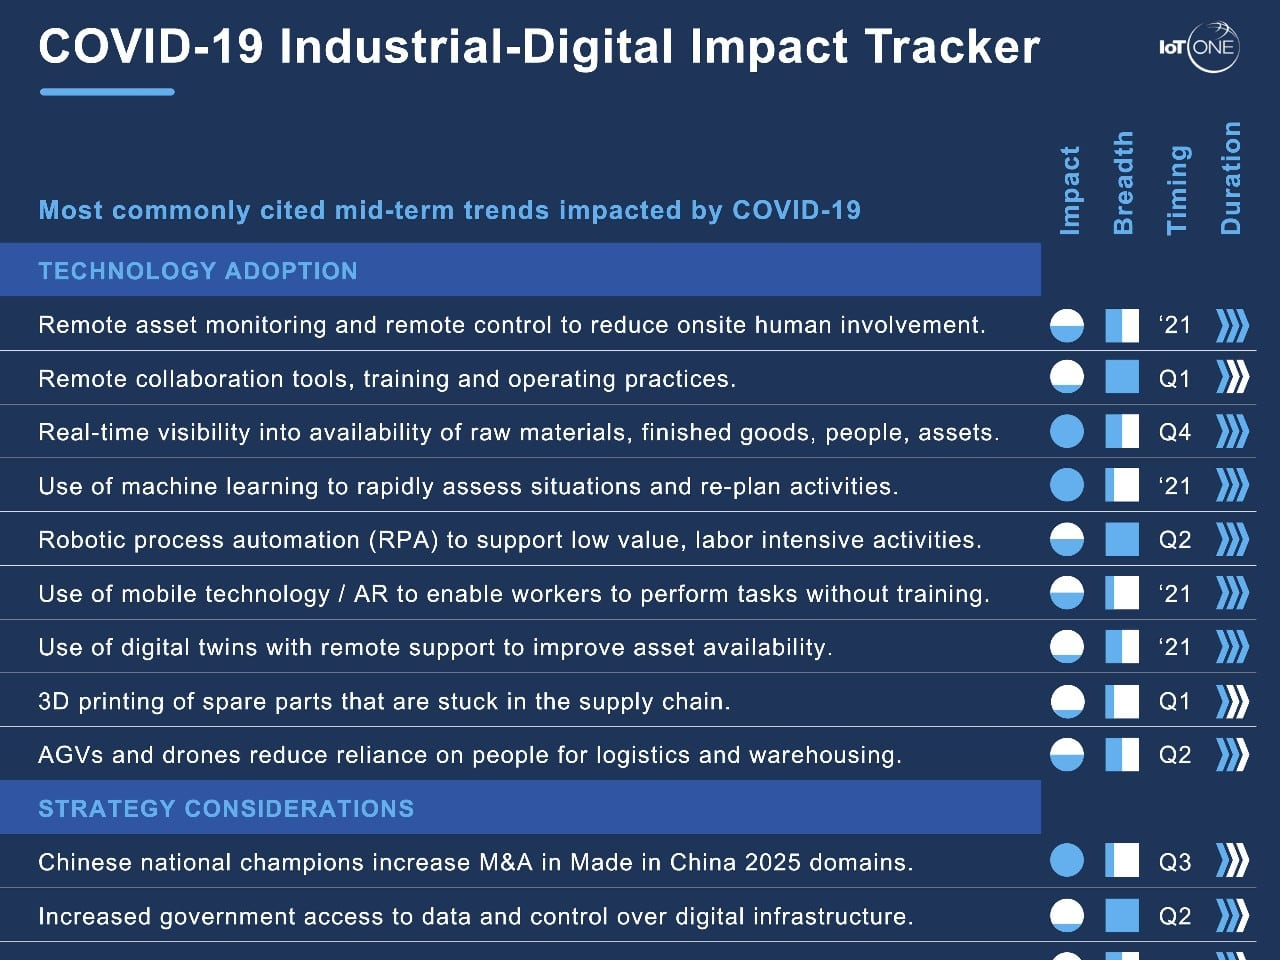 COVID-19 Industrial Digital Impact Tracker - Industrial IoT Insight - IoT ONE